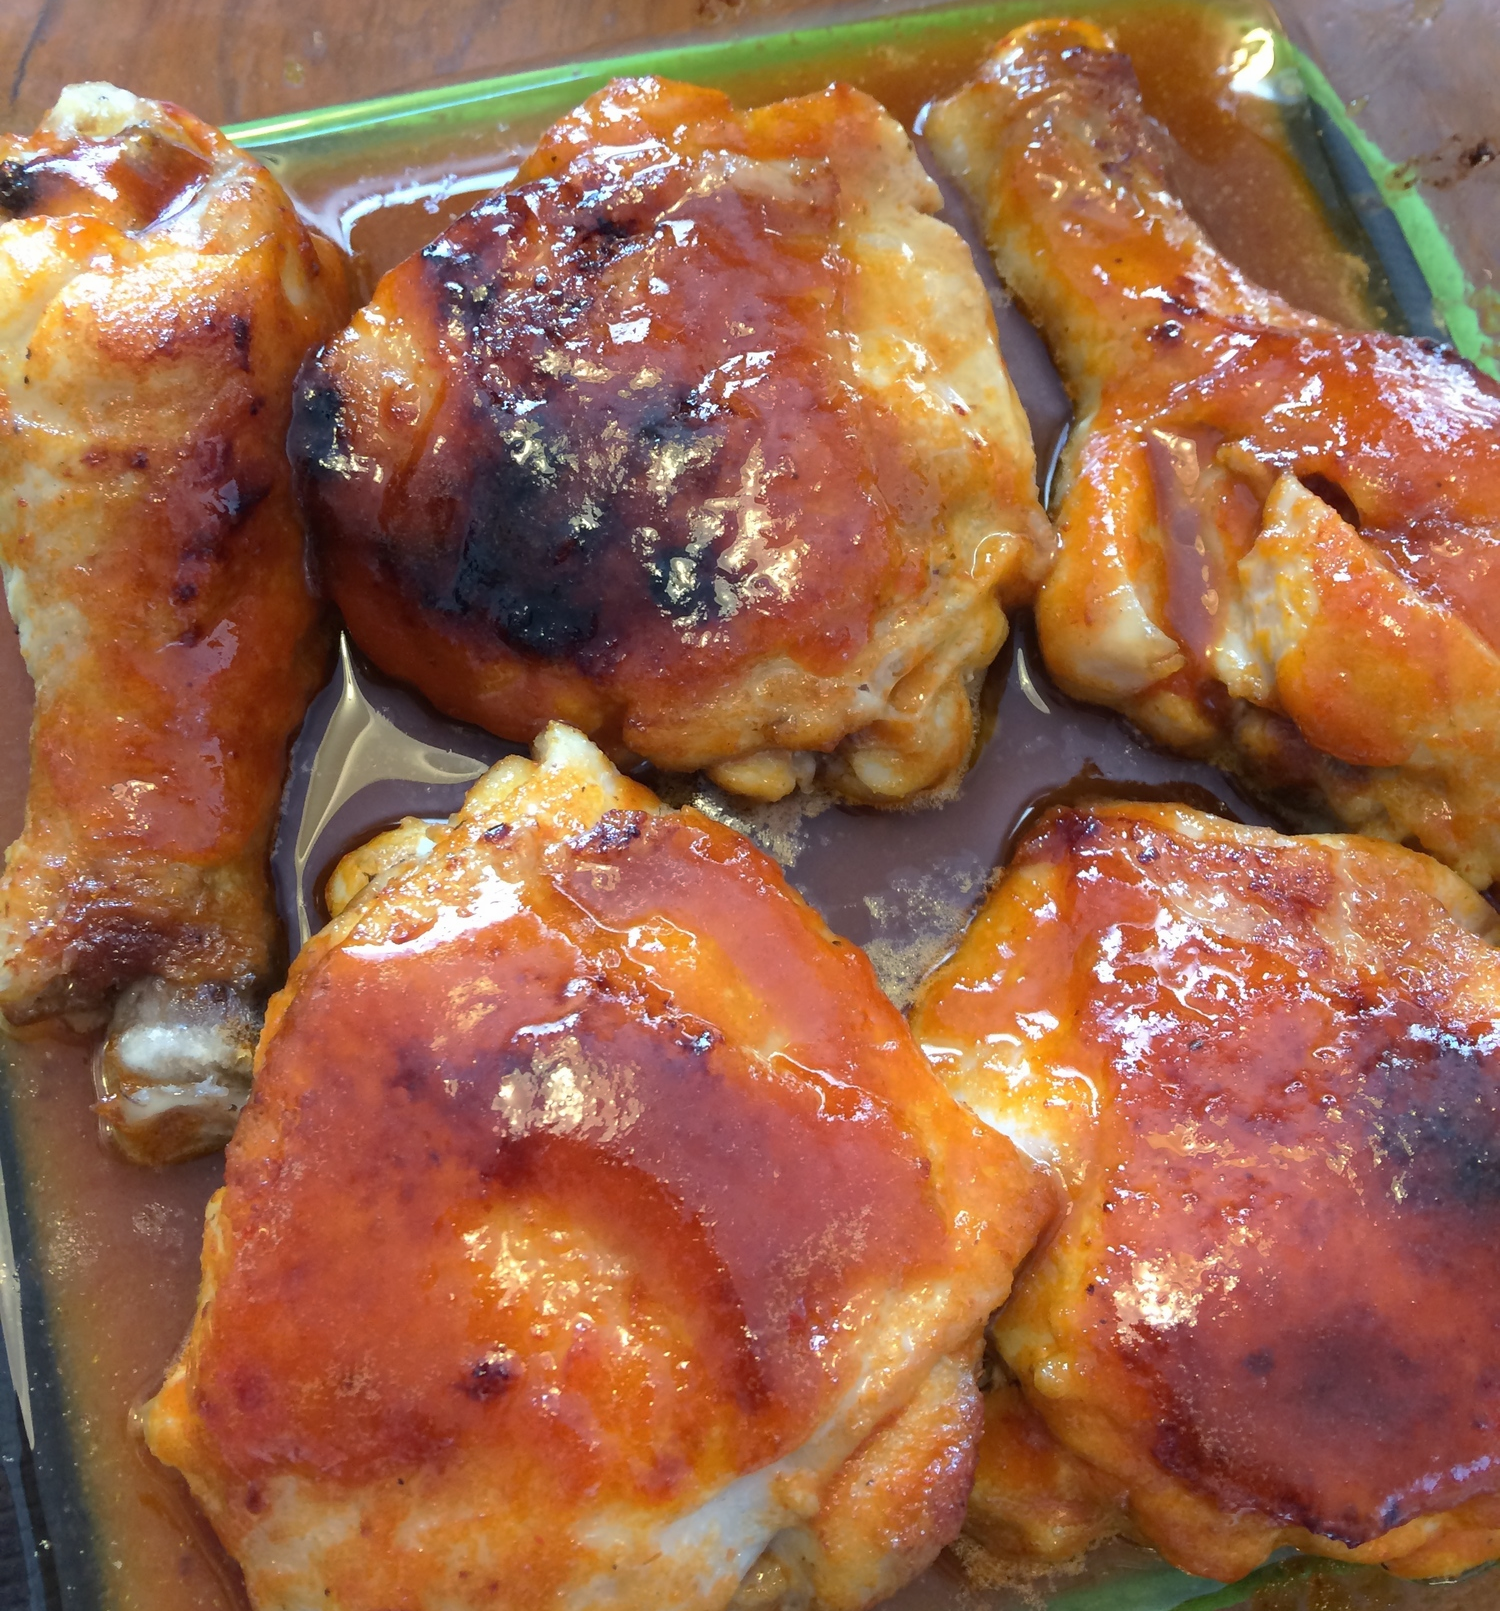 Baking a few pounds of chicken is a great place to start!